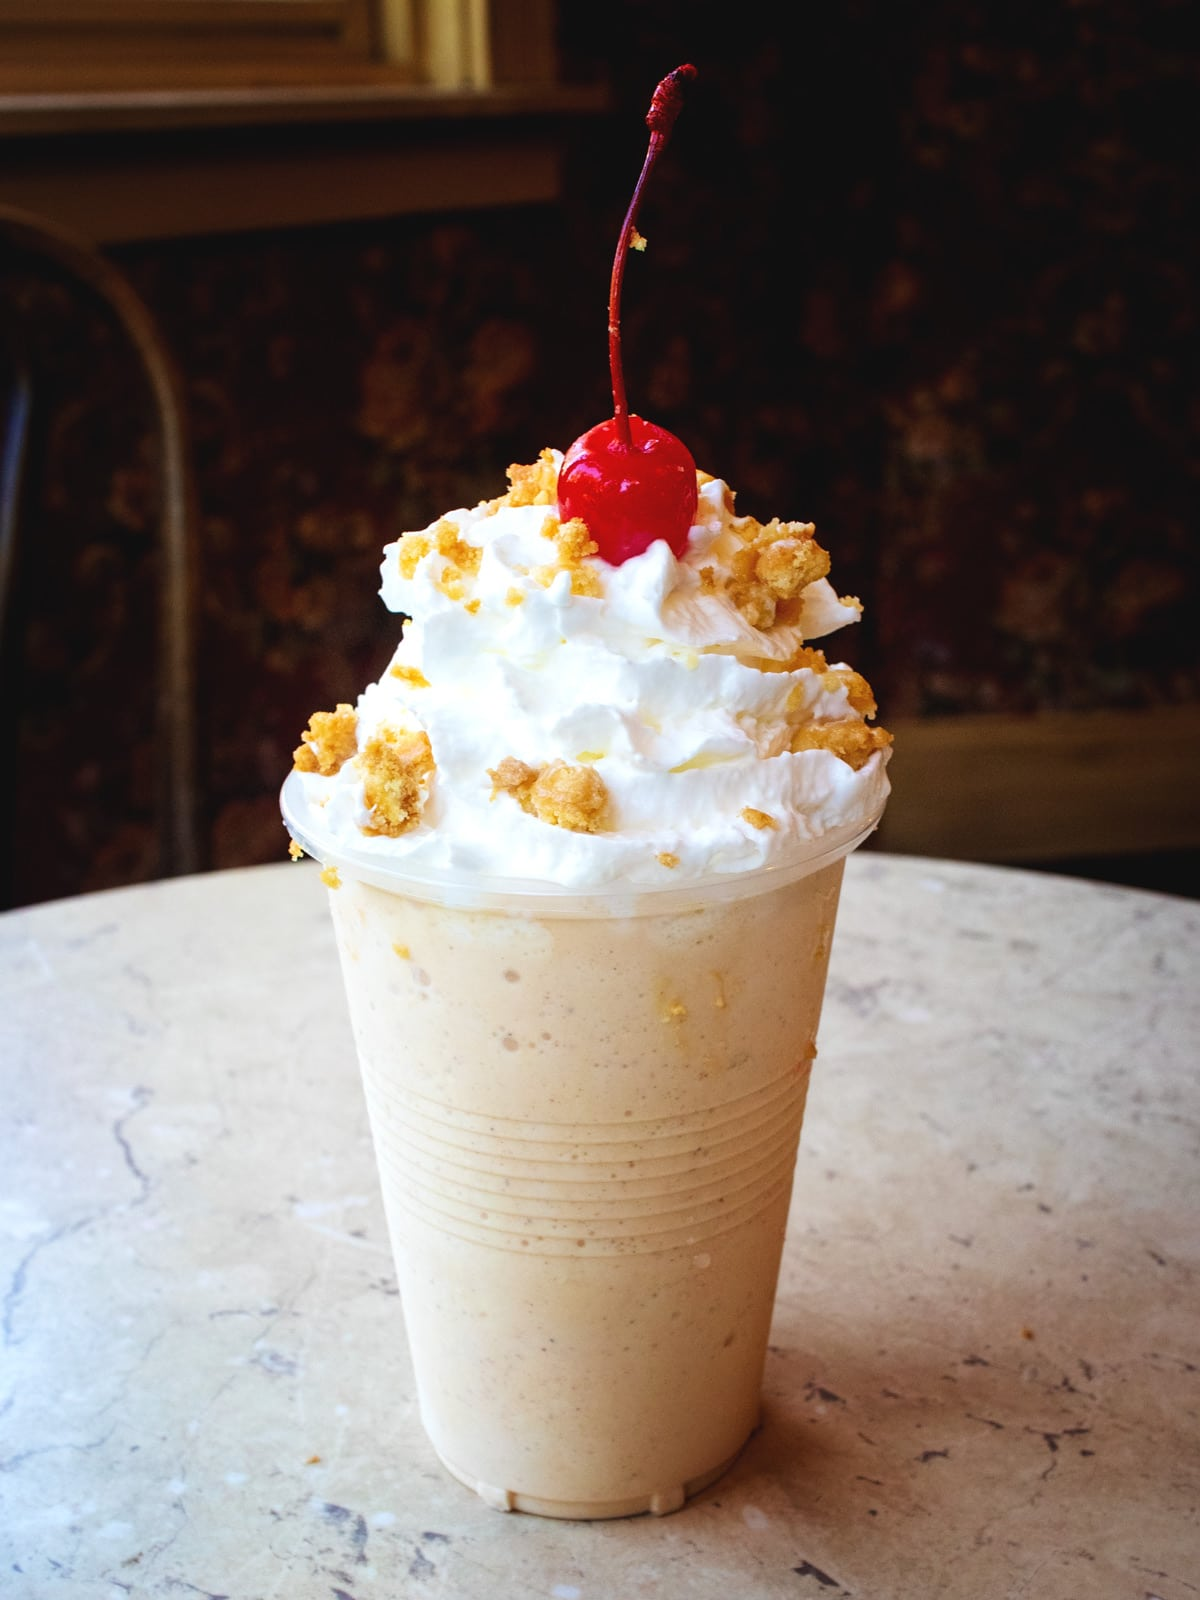 Pumpkin Spice Milk Shake at the Sweete Shoppe's Candy Kitchen of Dollywood